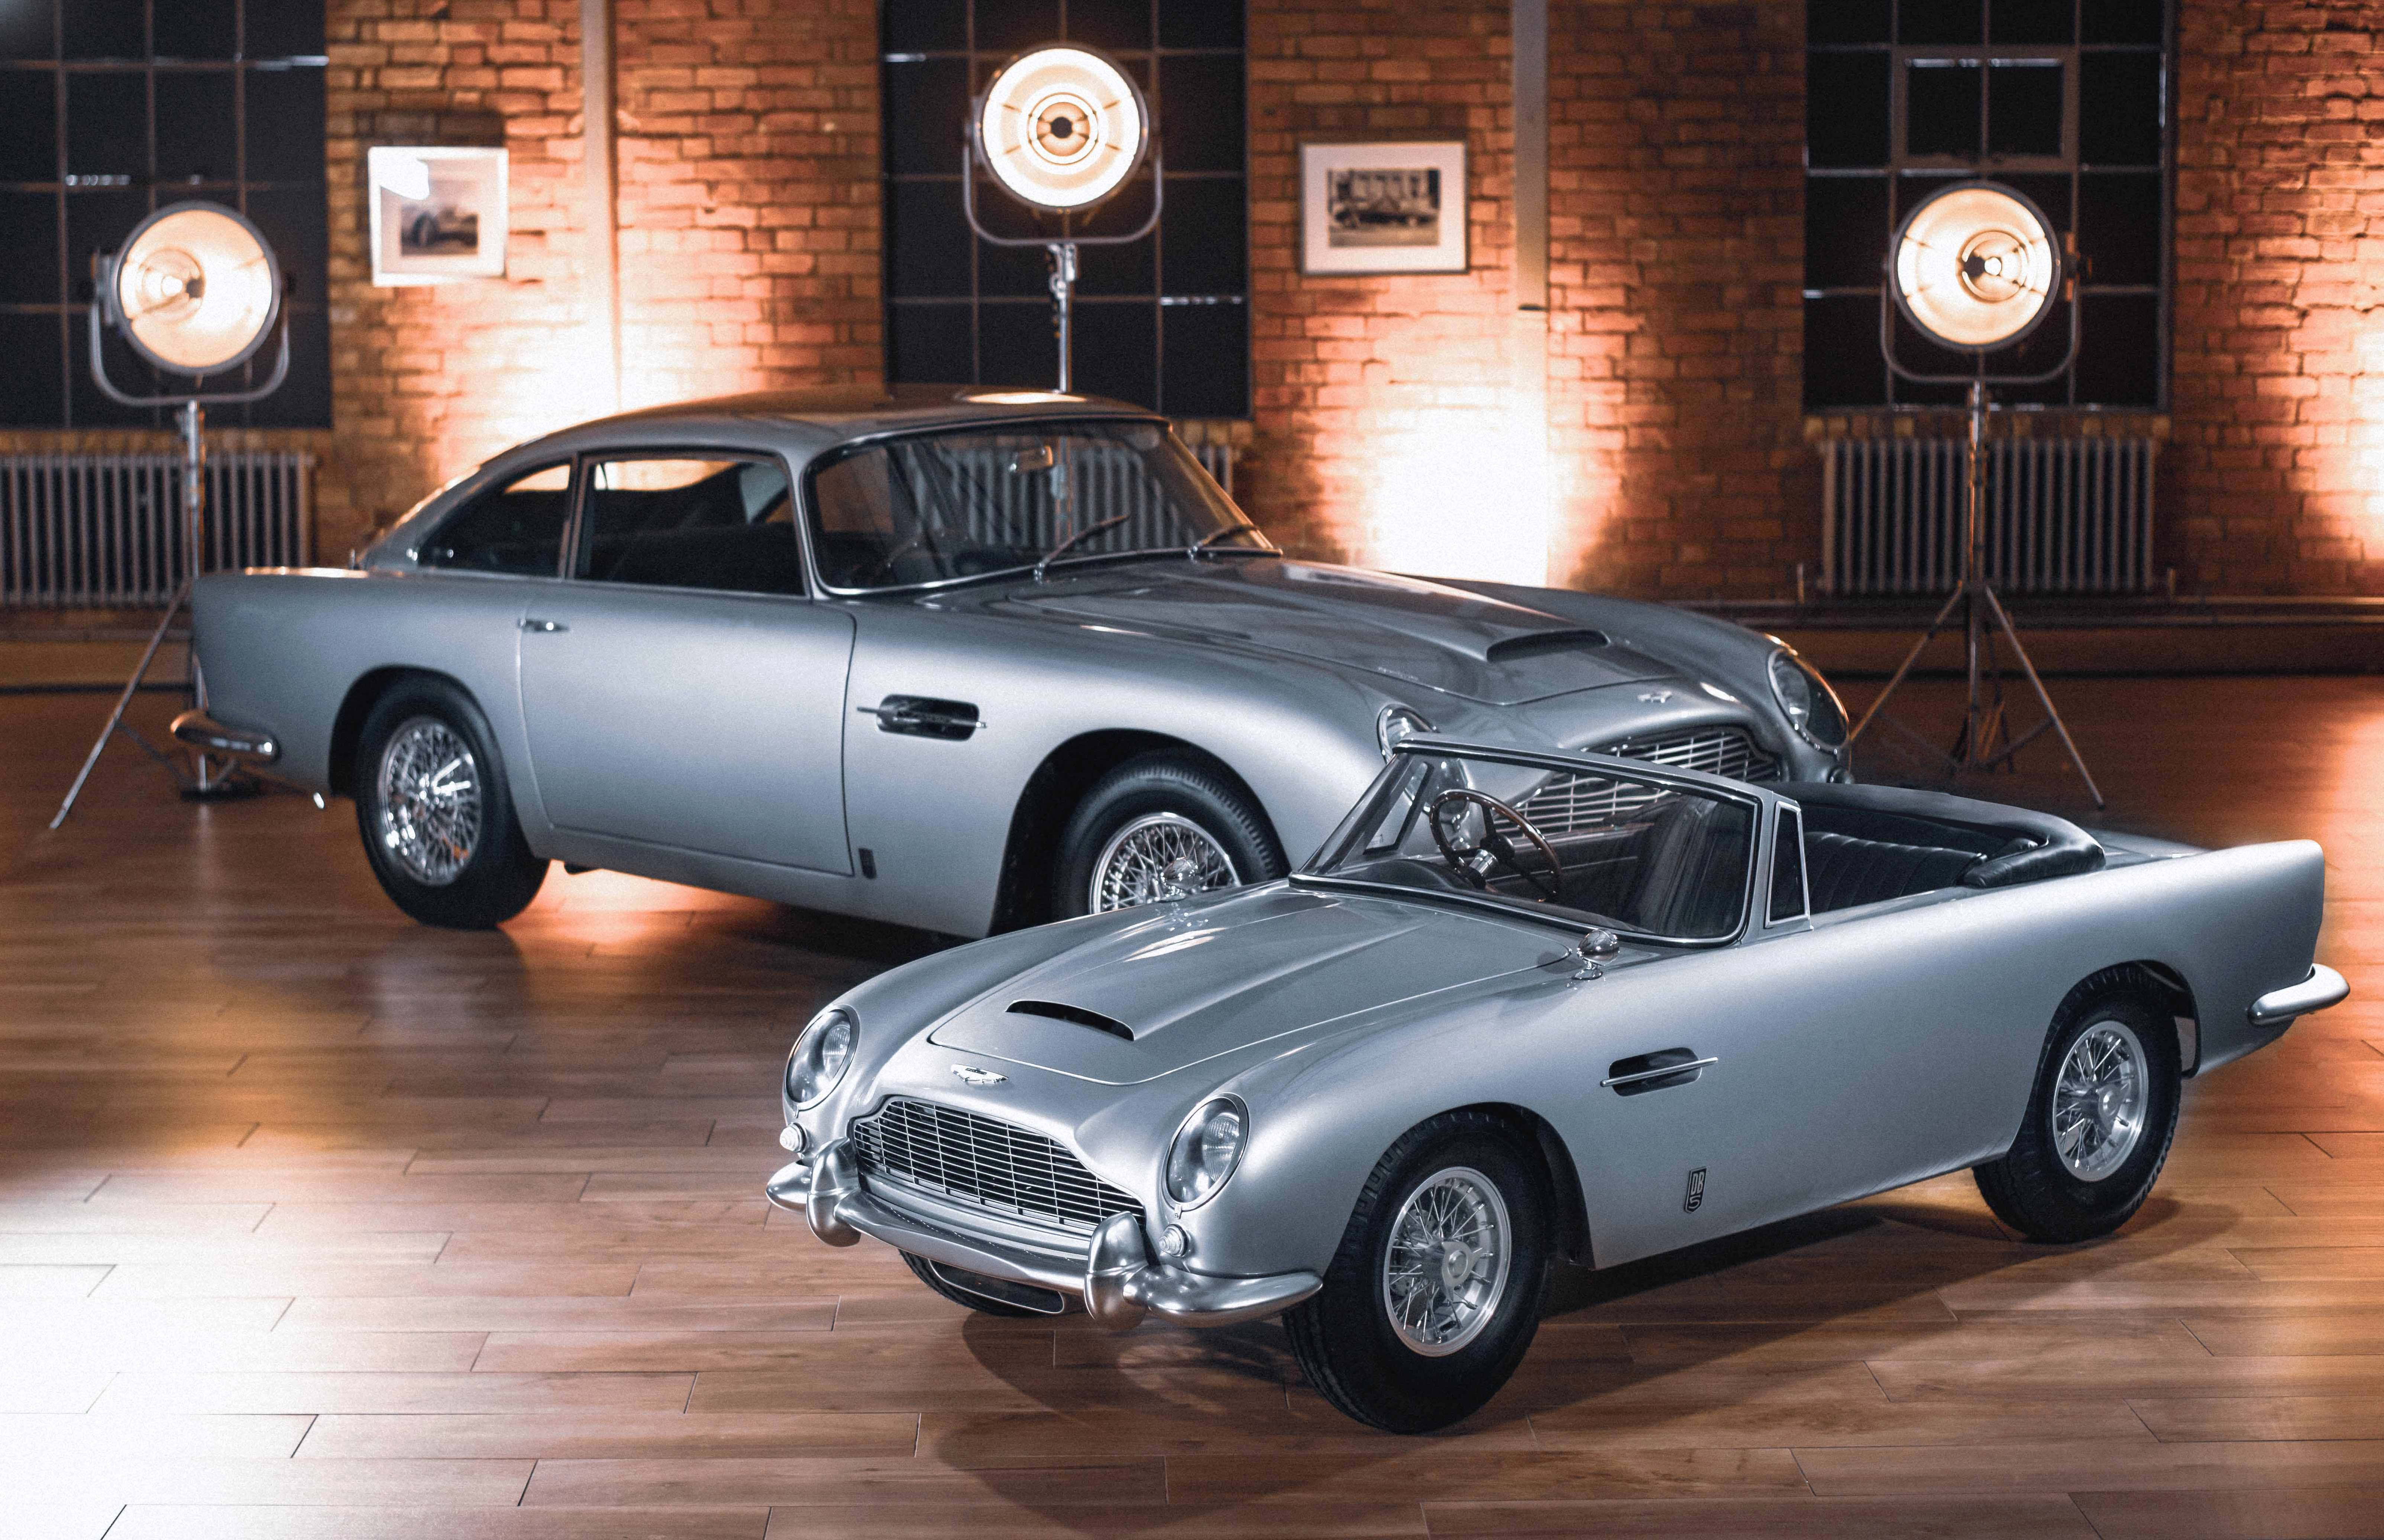 Aston Martin Db5 Junior The Celebration Of An Icon For A New Generation Auto Report Africa